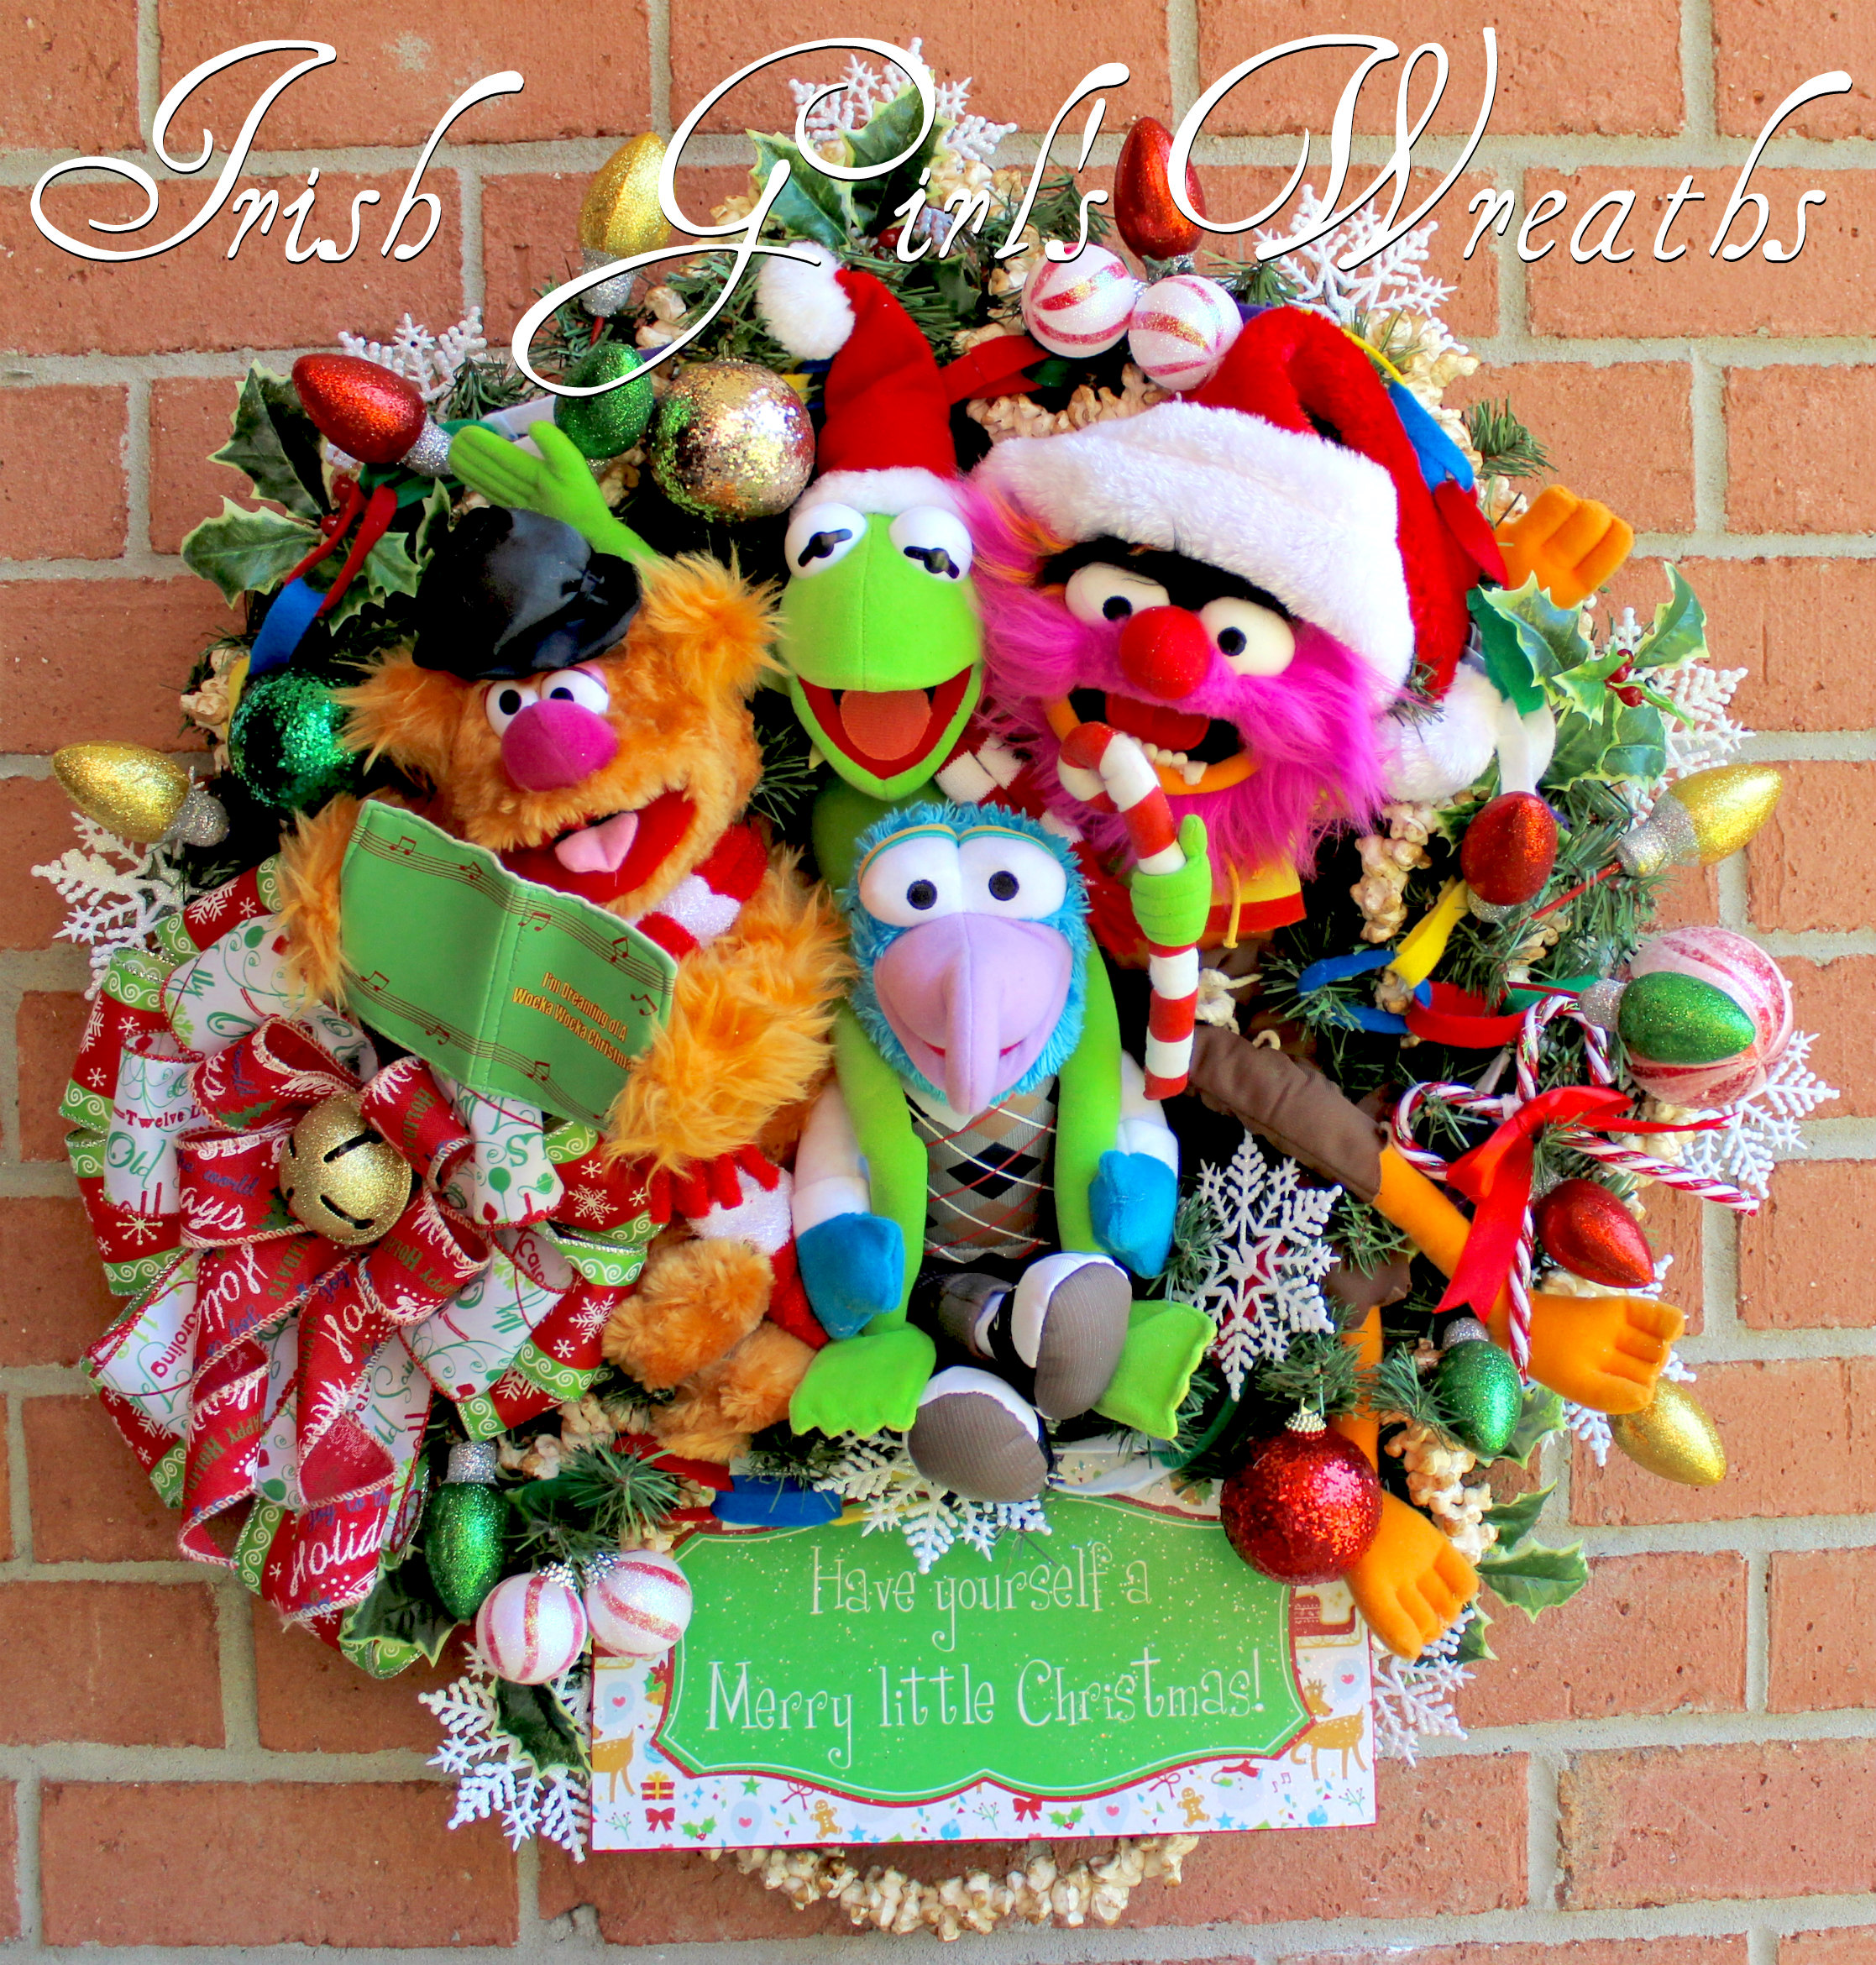 Deluxe Muppets Merry Little Christmas Wreath, Fozzie Bear, Kermit the Frog, Animal, Gonzo